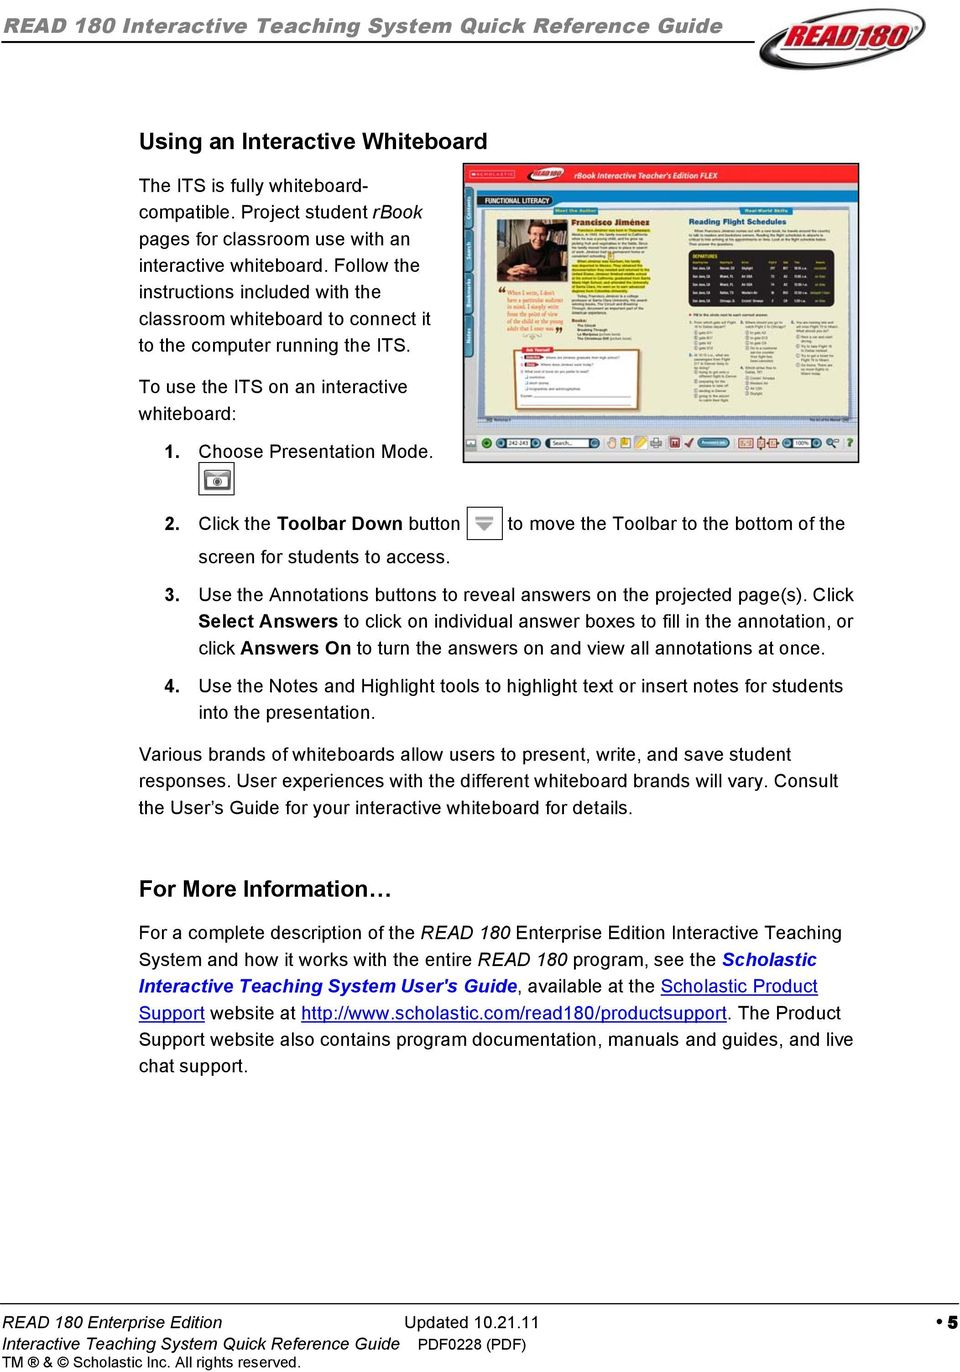 Read 180 Enterprise Edition Interactive Teaching System